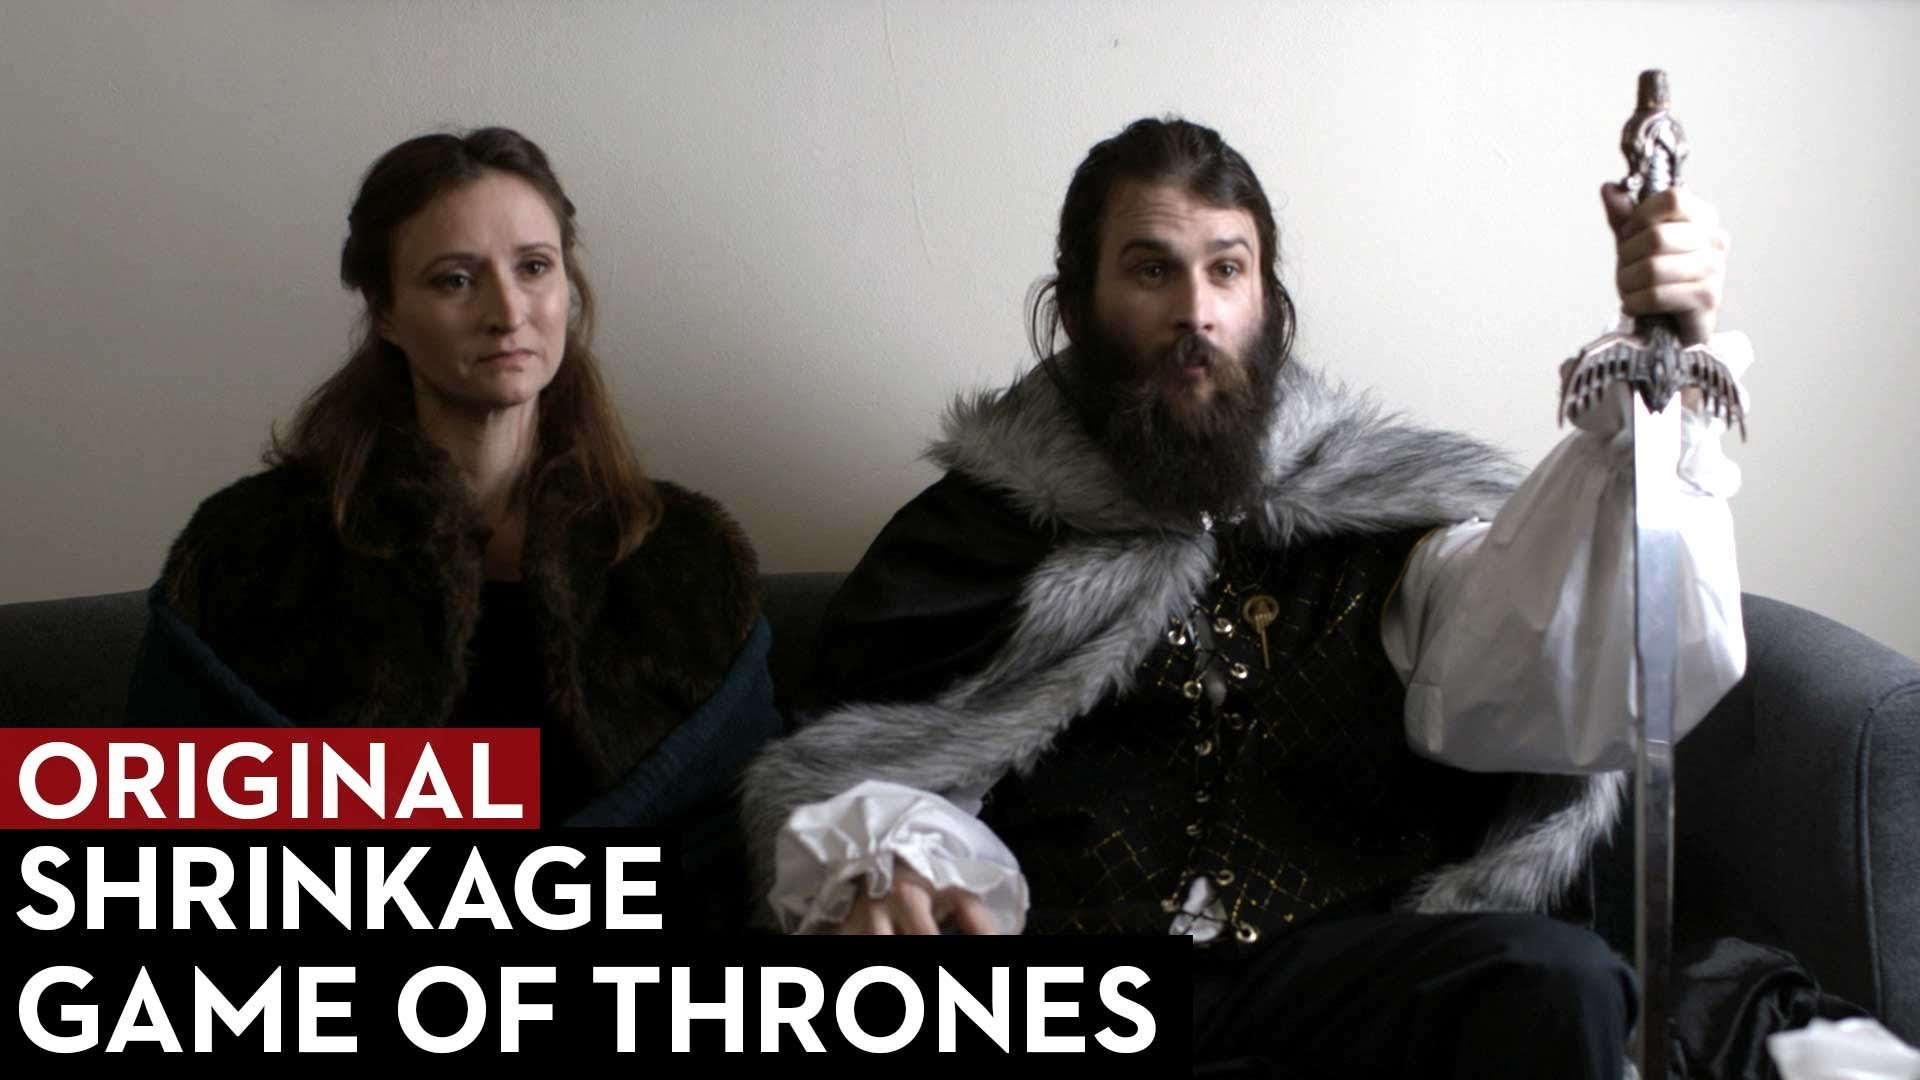 Game of Thrones' Ned Stark and Catelyn Stark Go to Therapy - Shrinkage Episode 4